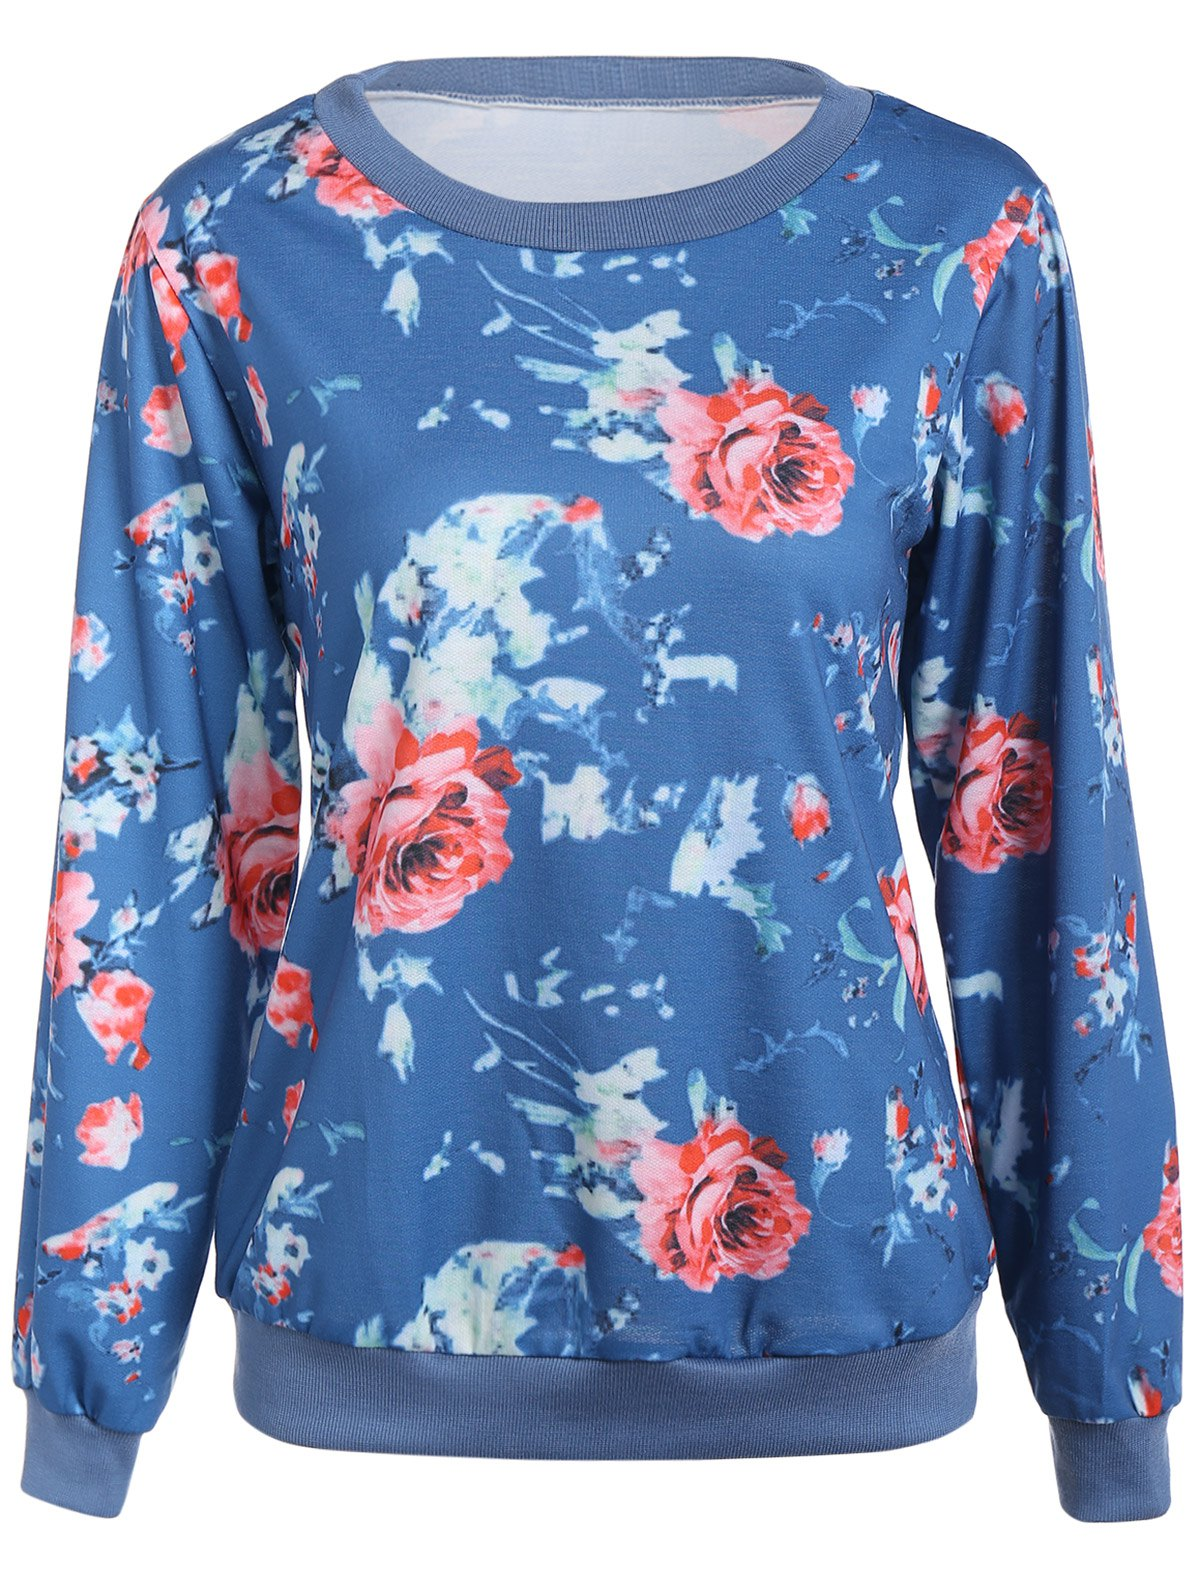 Cheap Floral Printed Crew Neck Sweatshirt